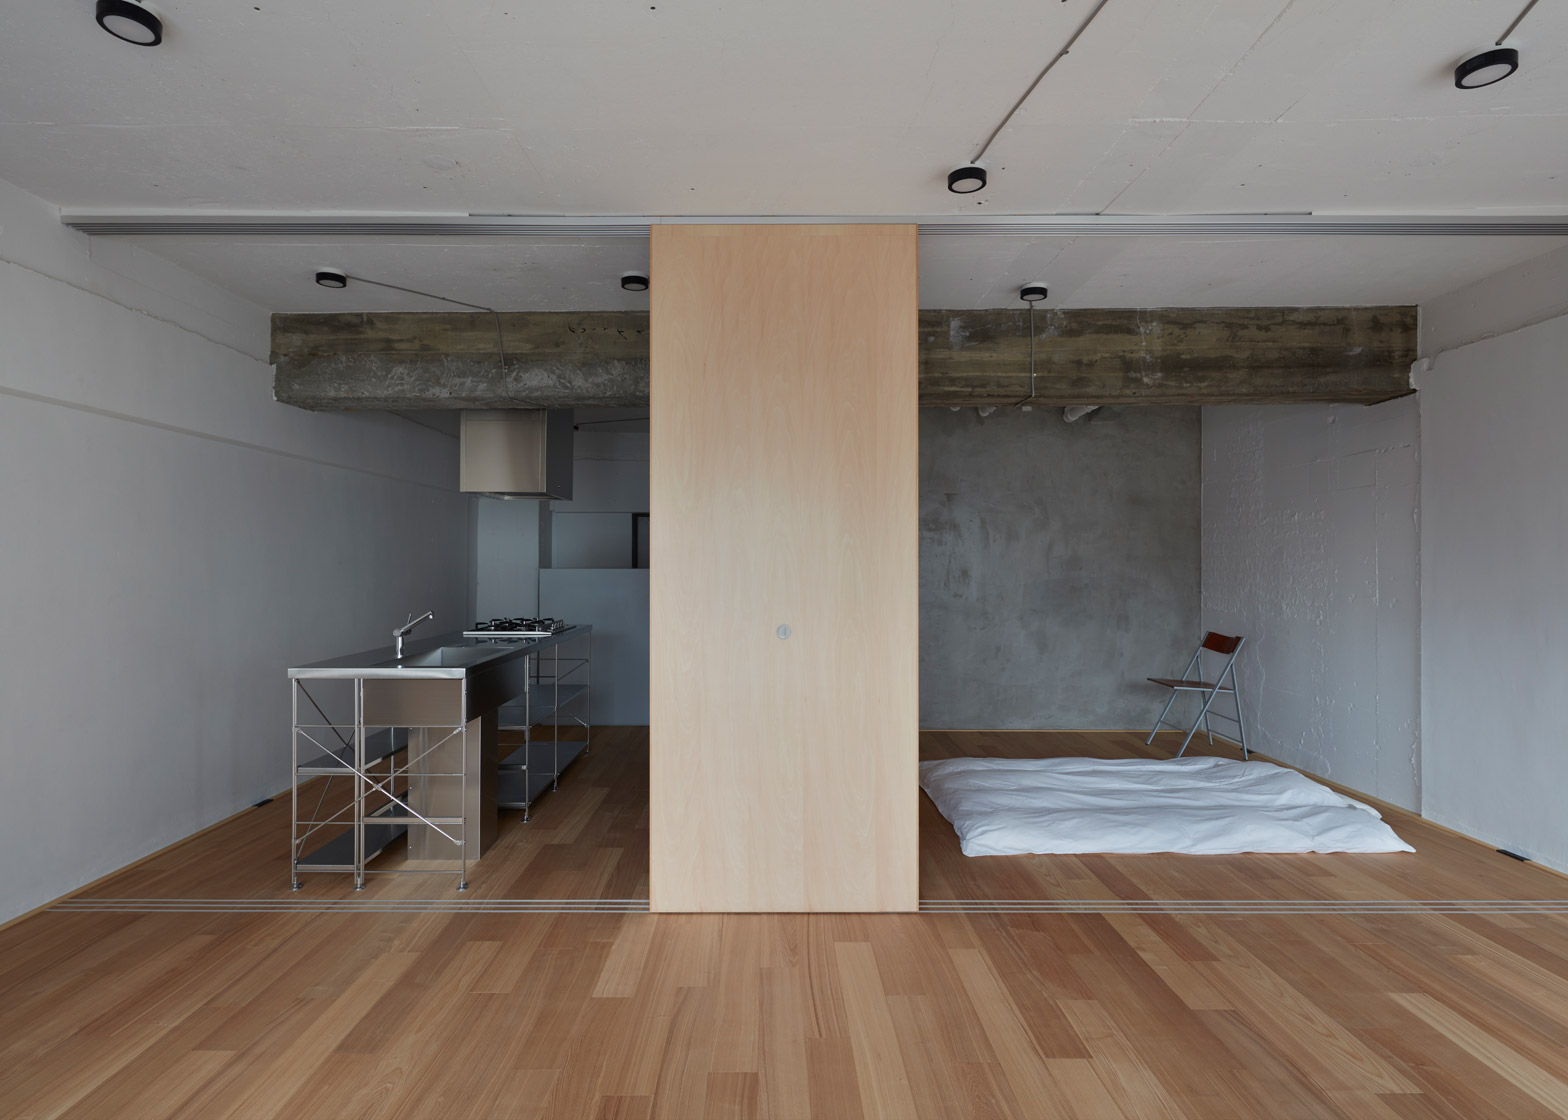 Small-Apartment-FrontOfficeStudio-Tokyo-Kitchen-and-Bedroom-Humble-Homes